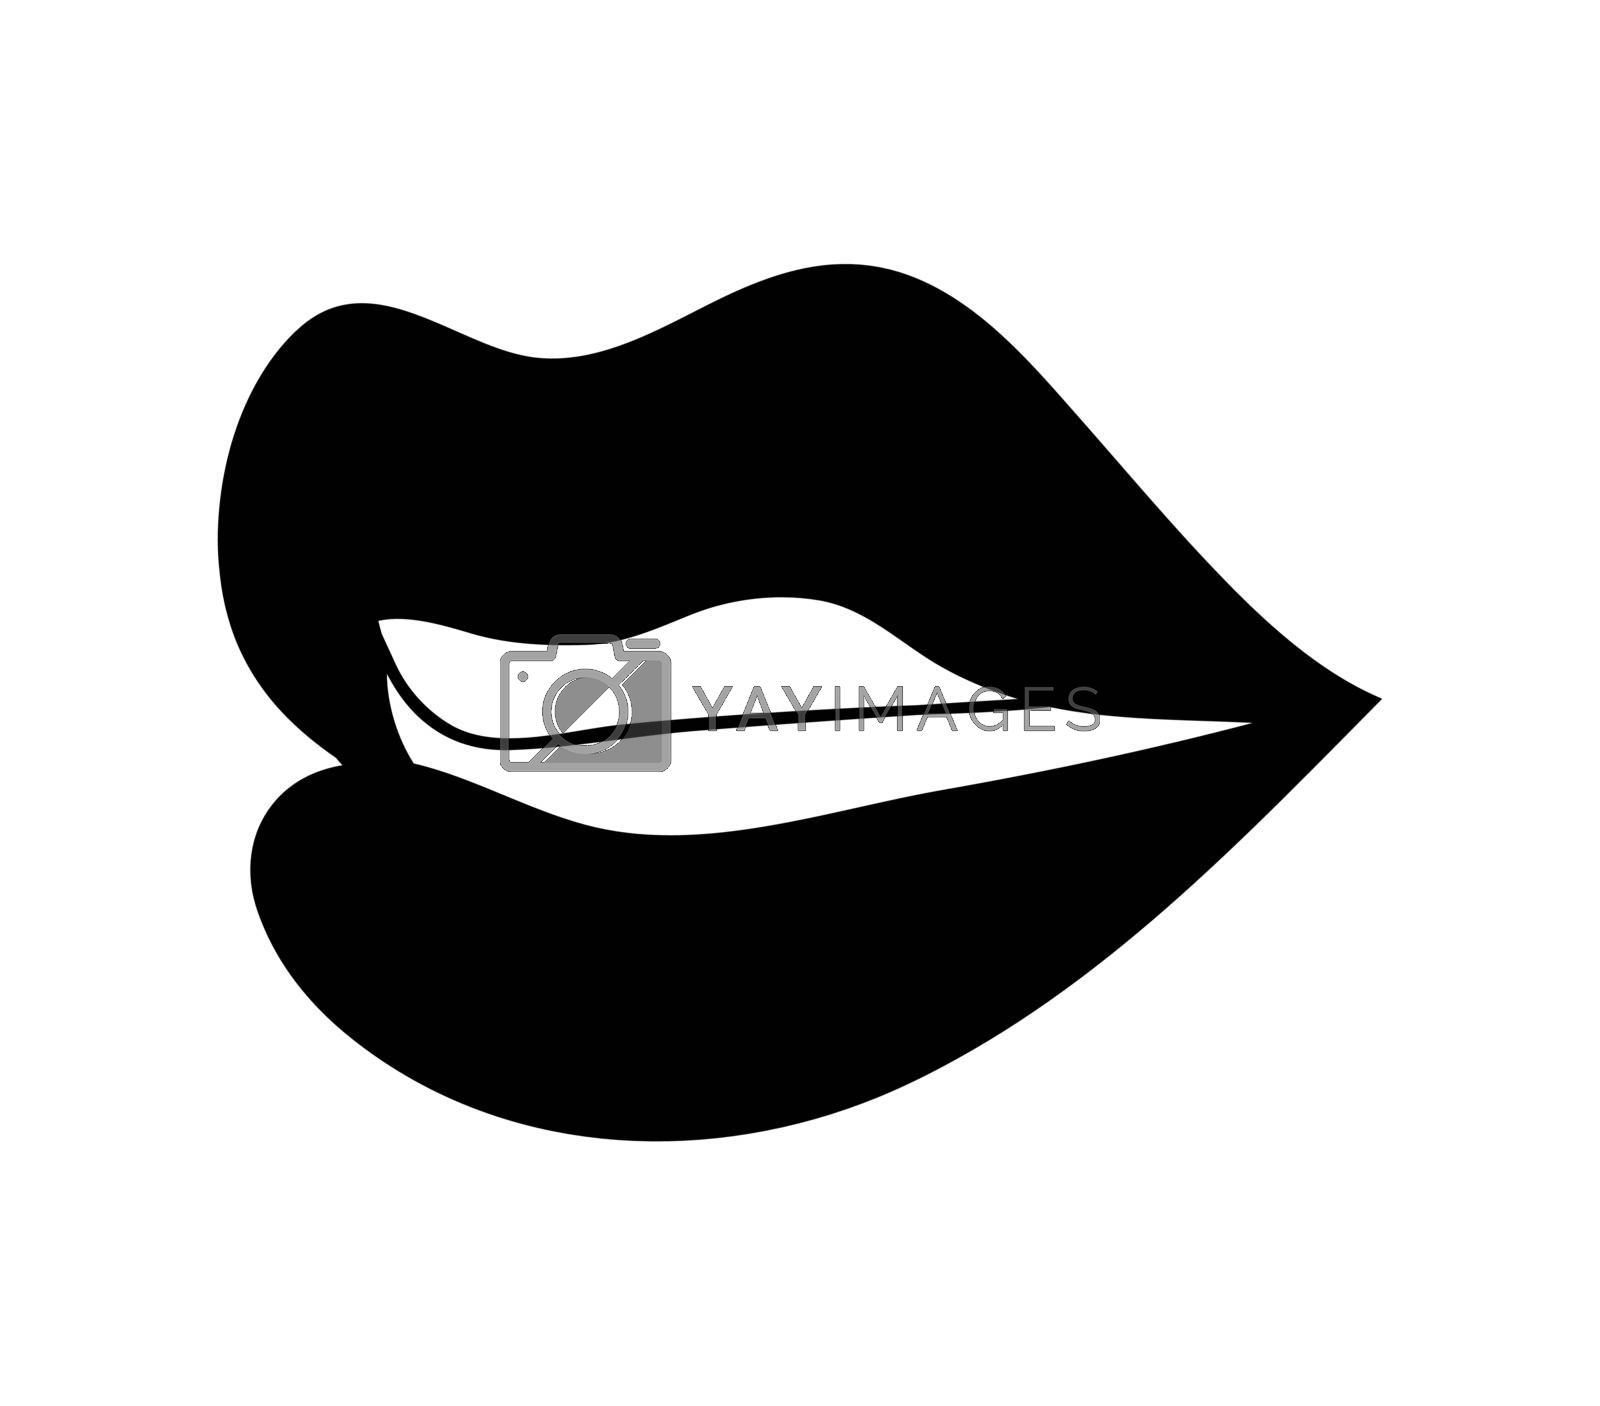 lips with teeth cartoon vector symbol icon design. Beautiful illustration isolated on white background